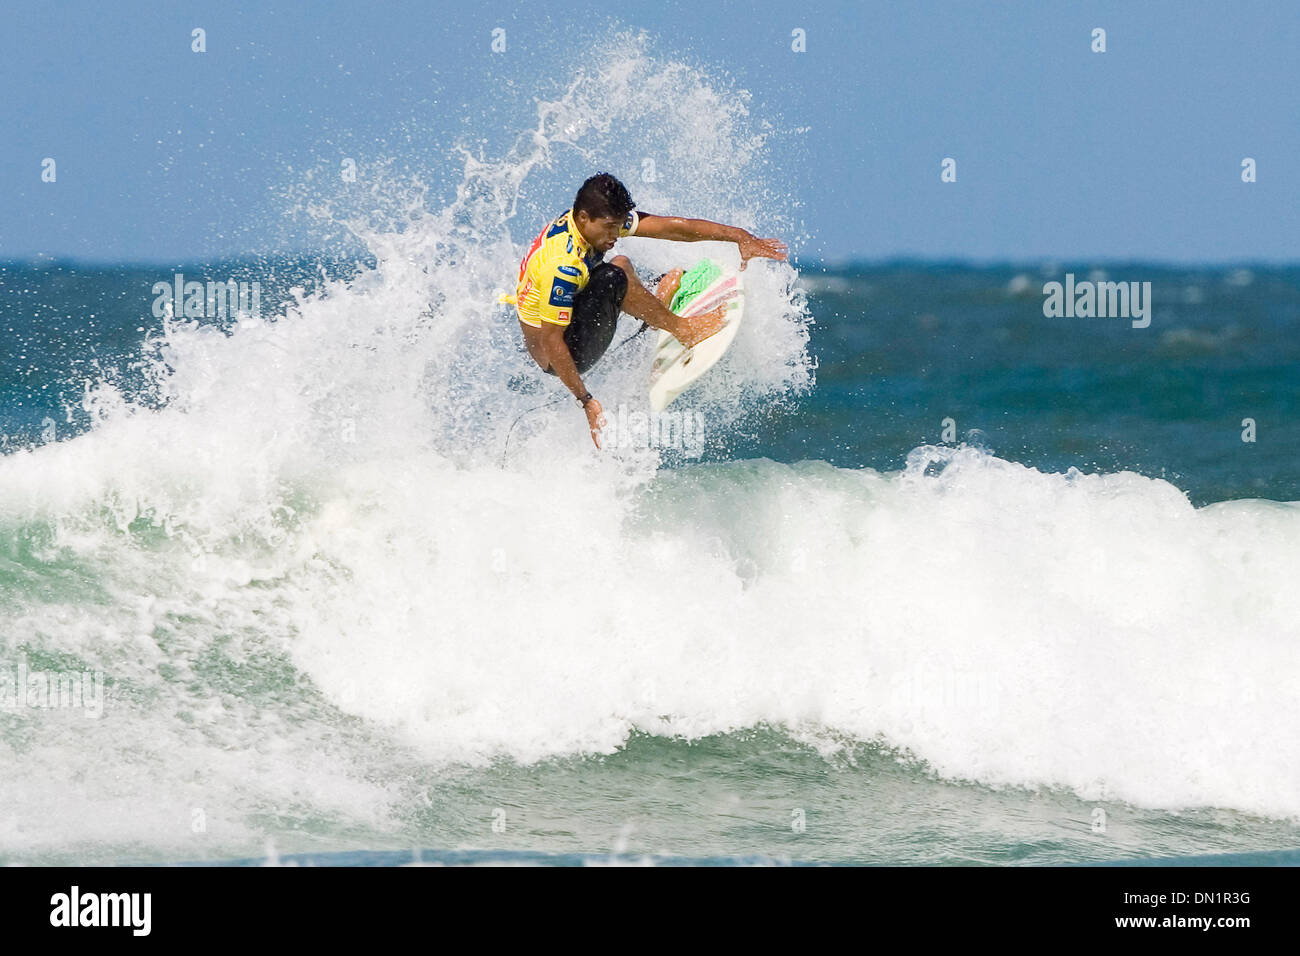 Mar 08, 2006; Duranbah, Gold Coast, AUSTRALIA; In one of the closest heats of the day thus far, MARCELO NUNES (Brazil) narrowly defeated former ASP World Champion CJ Hobgood at the Quiksilver Pro presented by Samsung, at Duranbah on the Gold Coast of Australia today. Nunes sealed the deal when he scored the only good ride of the heat Ð a 7.5 out of a possible 10 points. Nunes advan - Stock Image